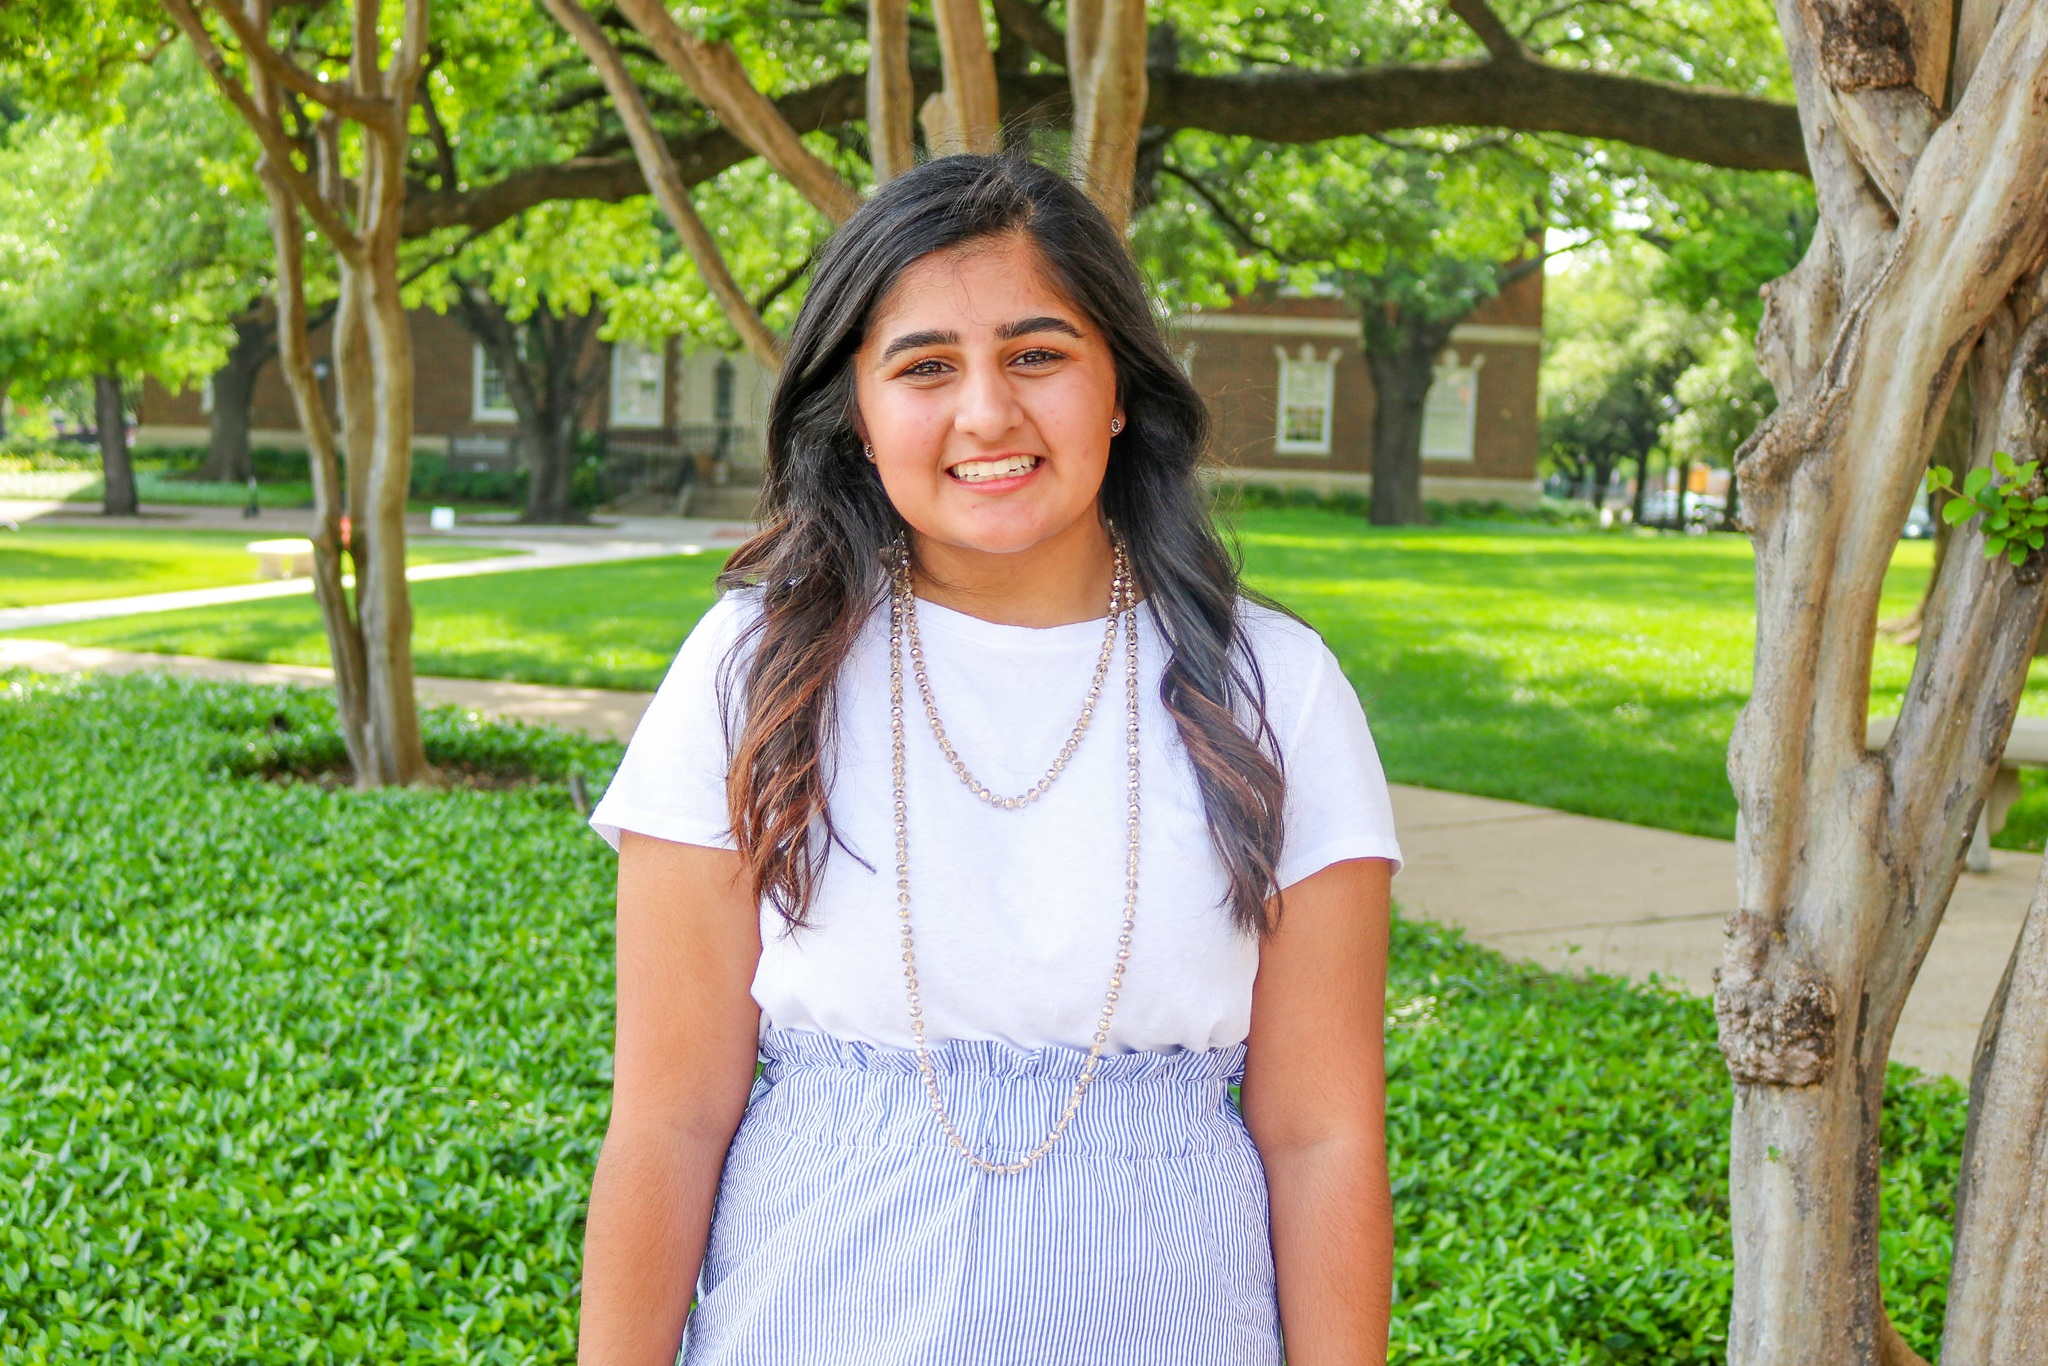 Anjali is a sophomore from Plano, Texas and is studying Finance and Psychology with a minor in Advertising. She dreams of being a CEO of her own company one day. Although she loves all Boaz events, her favorite is the Boaz Patio BBQ. If you're looking for Anjali, you'll likely find her in the Boaz Family Room or hanging out in the third west study lounge (where some of her favorite Boaz memories have been made).